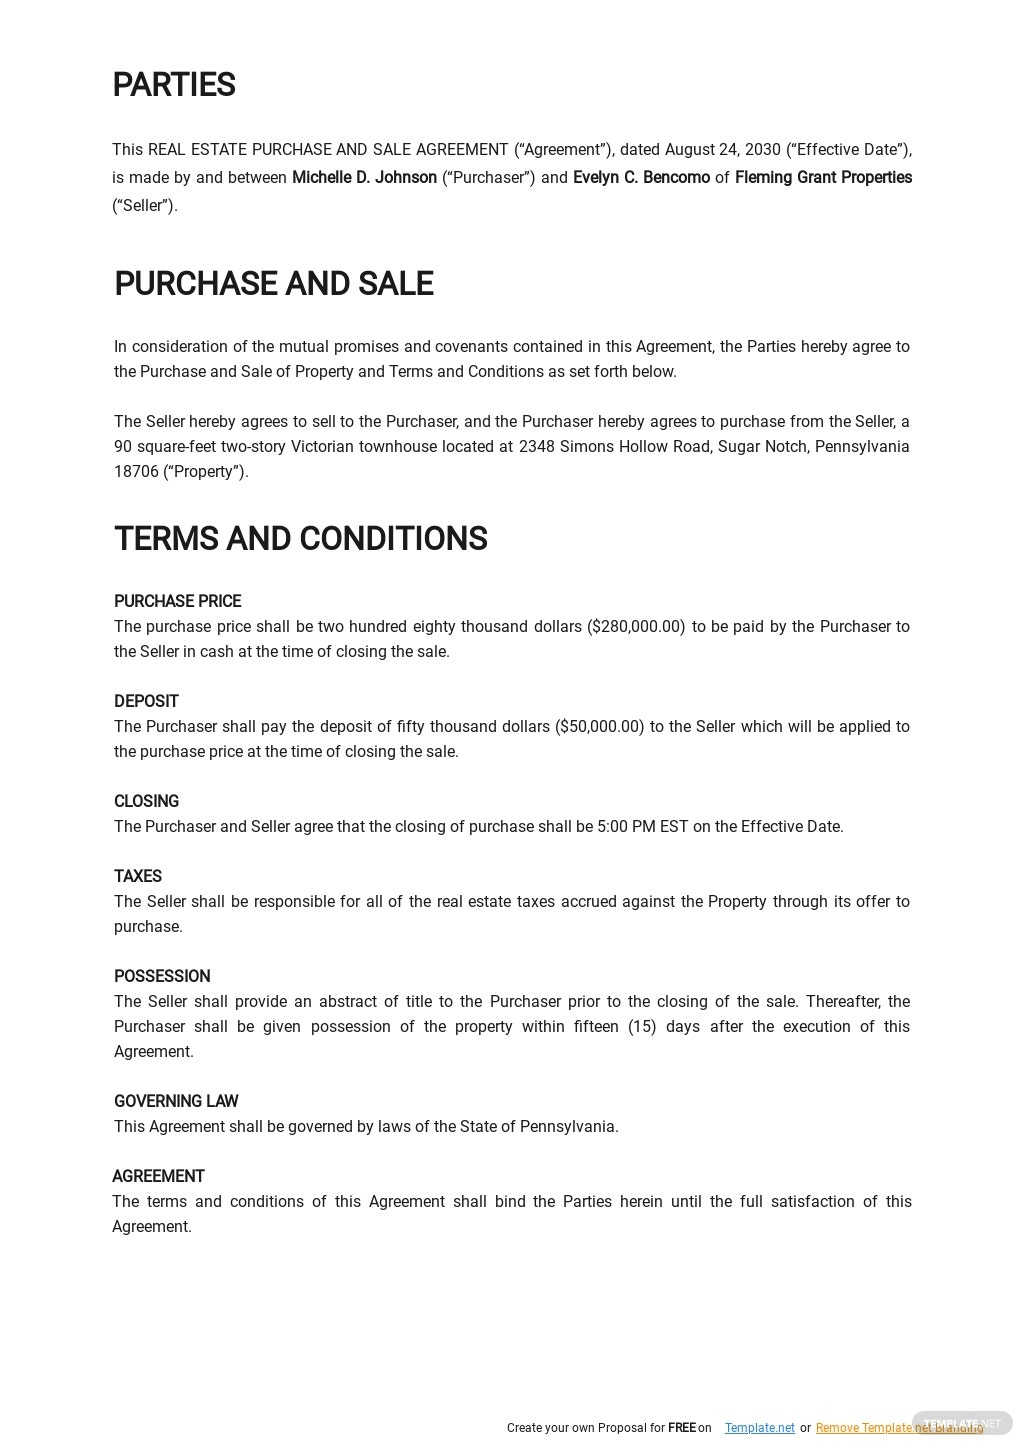 Real Estate Purchase and Sale Agreement Template 1.jpe